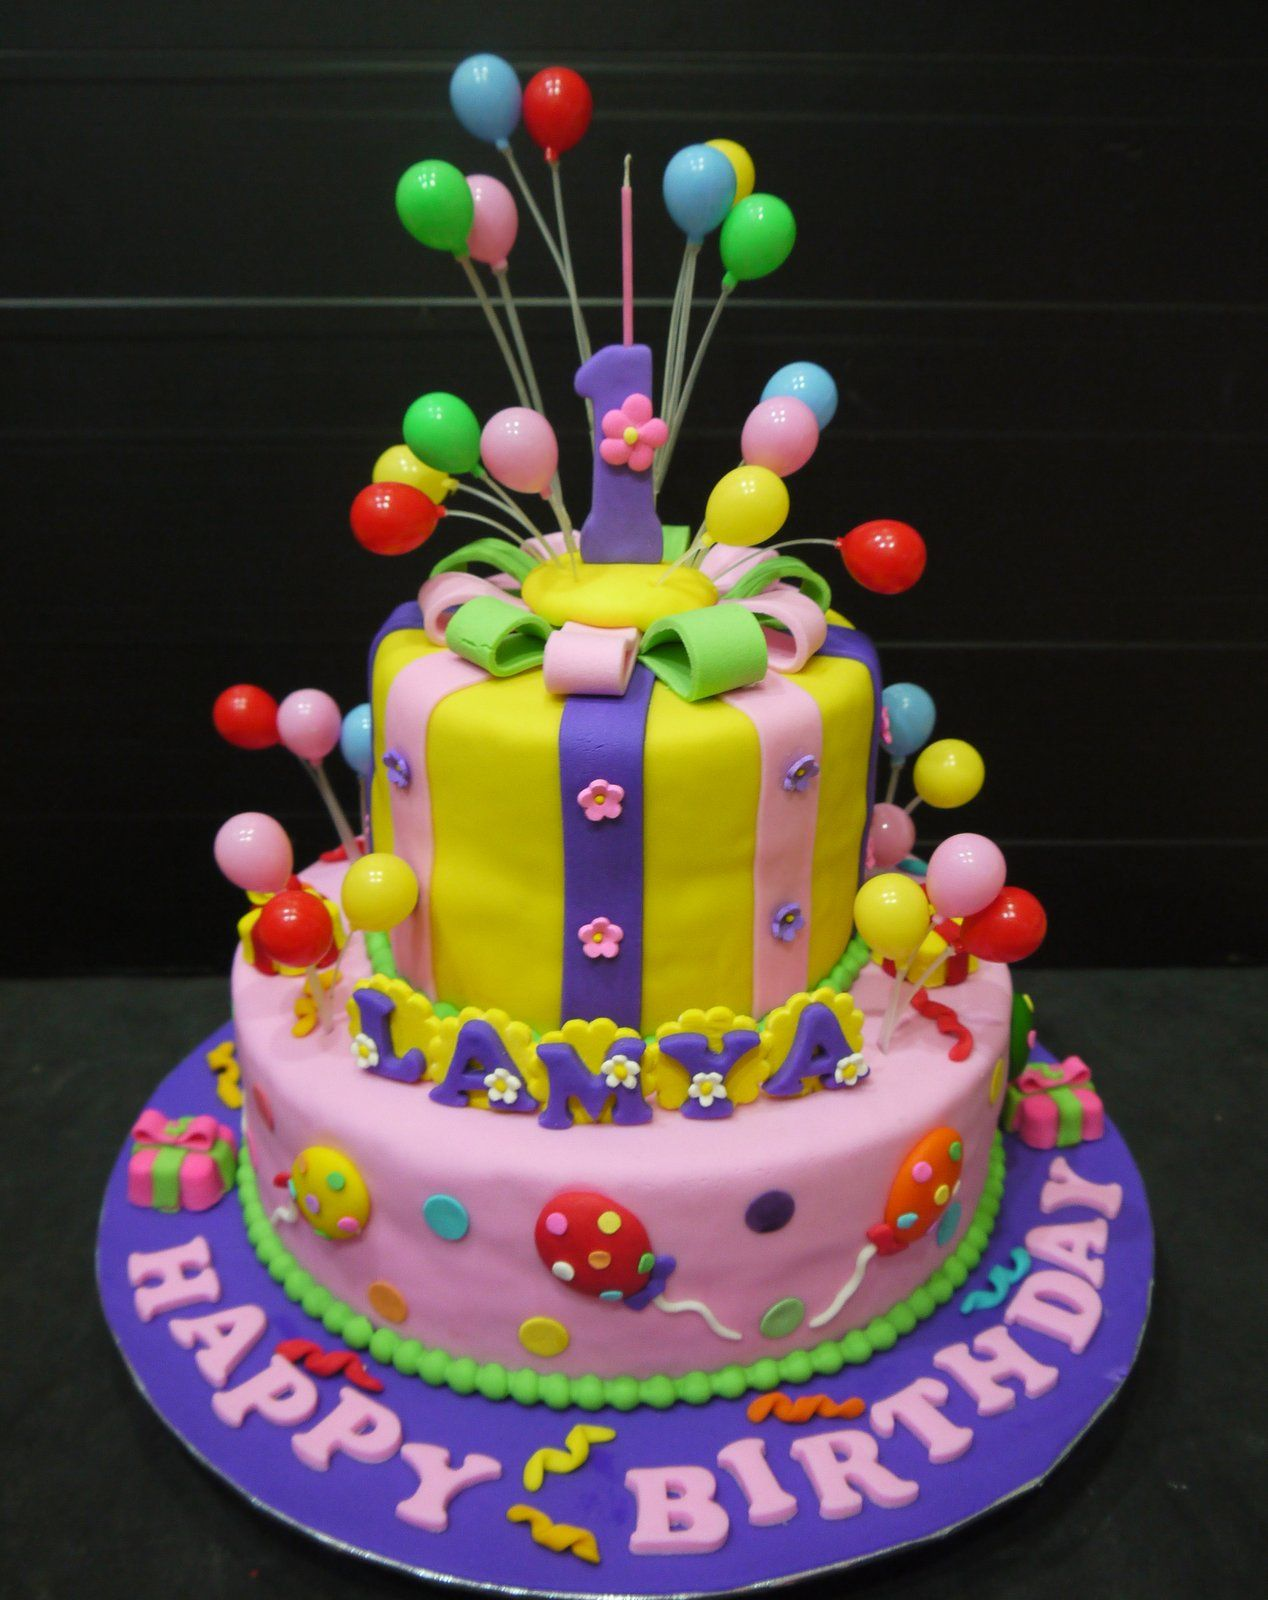 Fondant cake Balloons Kids birthday queques